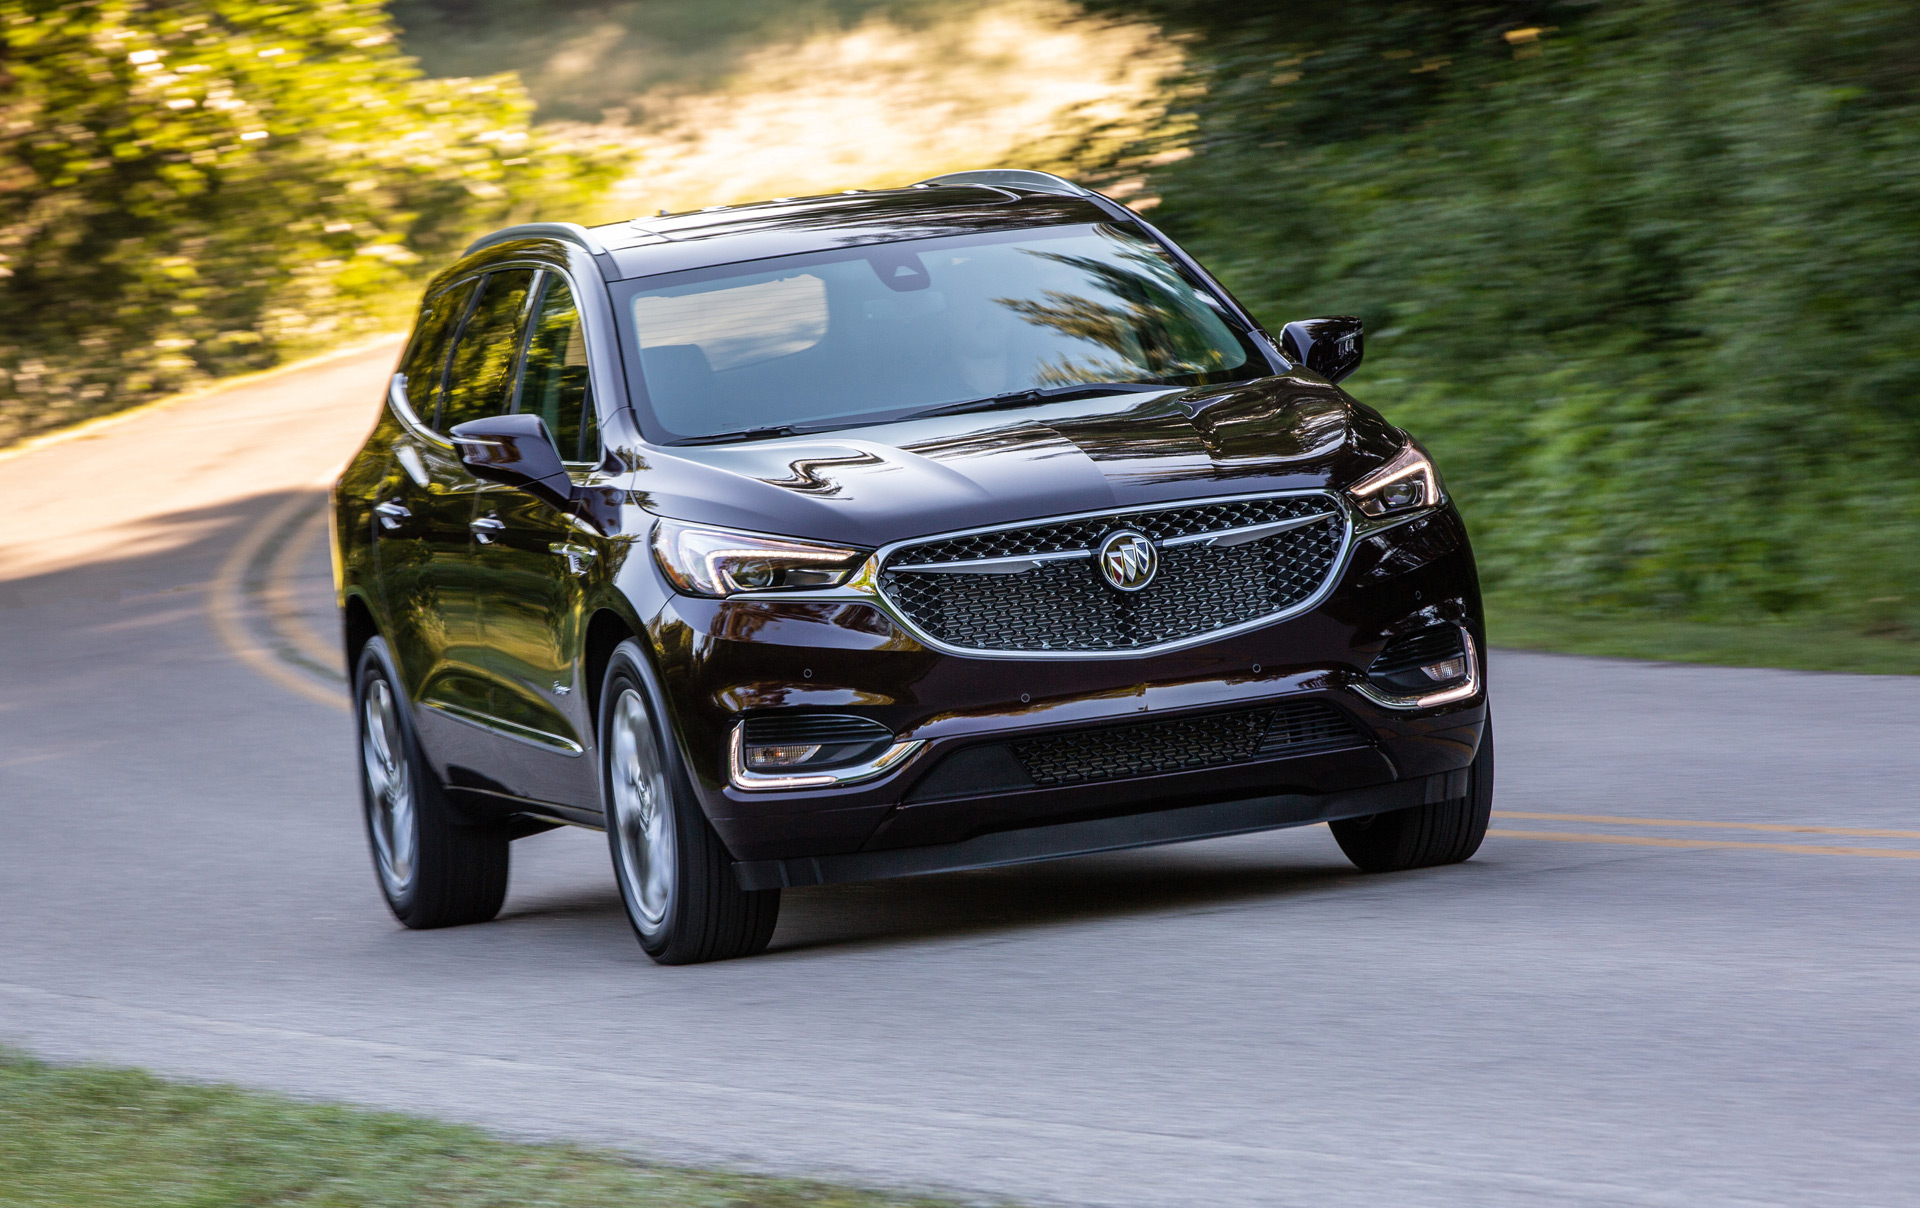 2020 Buick Enclave New Review